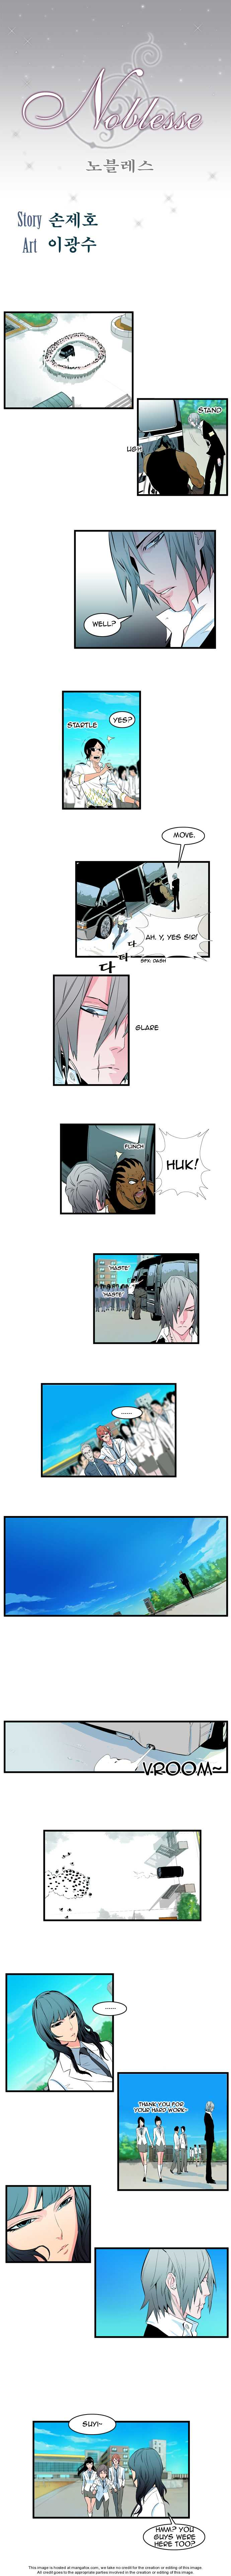 Noblesse 96 Page 1